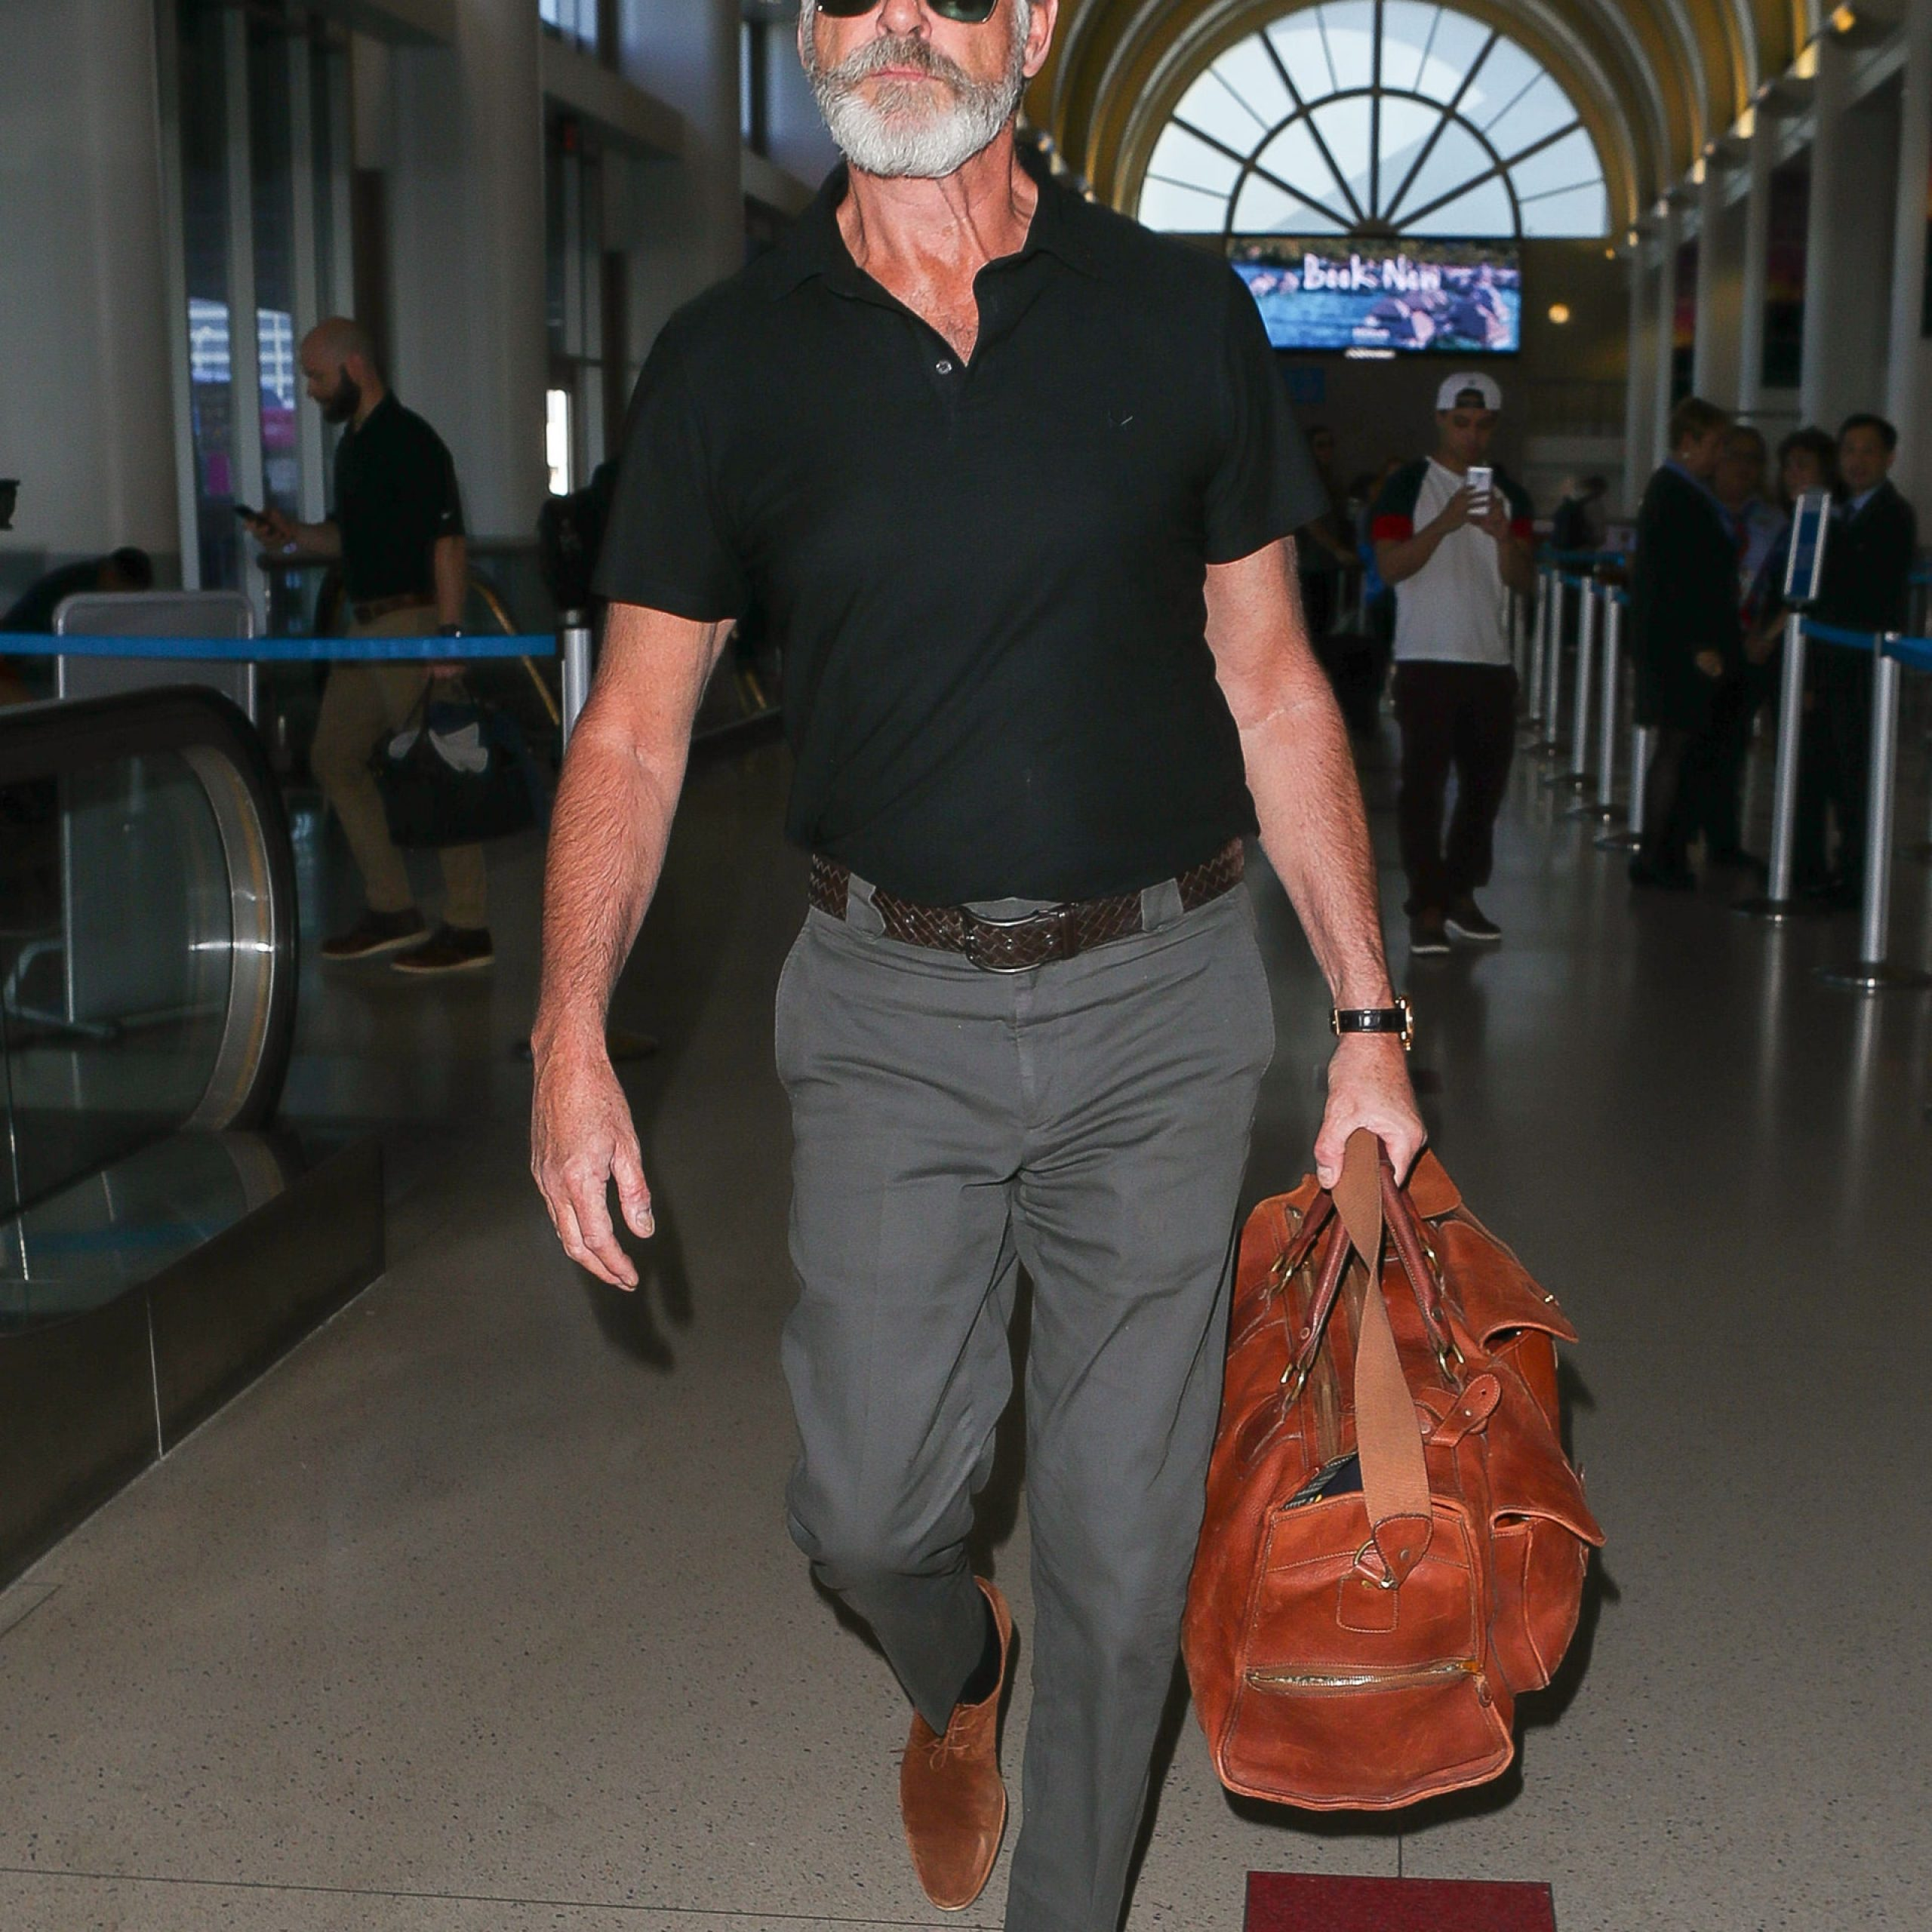 Pierce Brosnan - Travel in style with MOTA